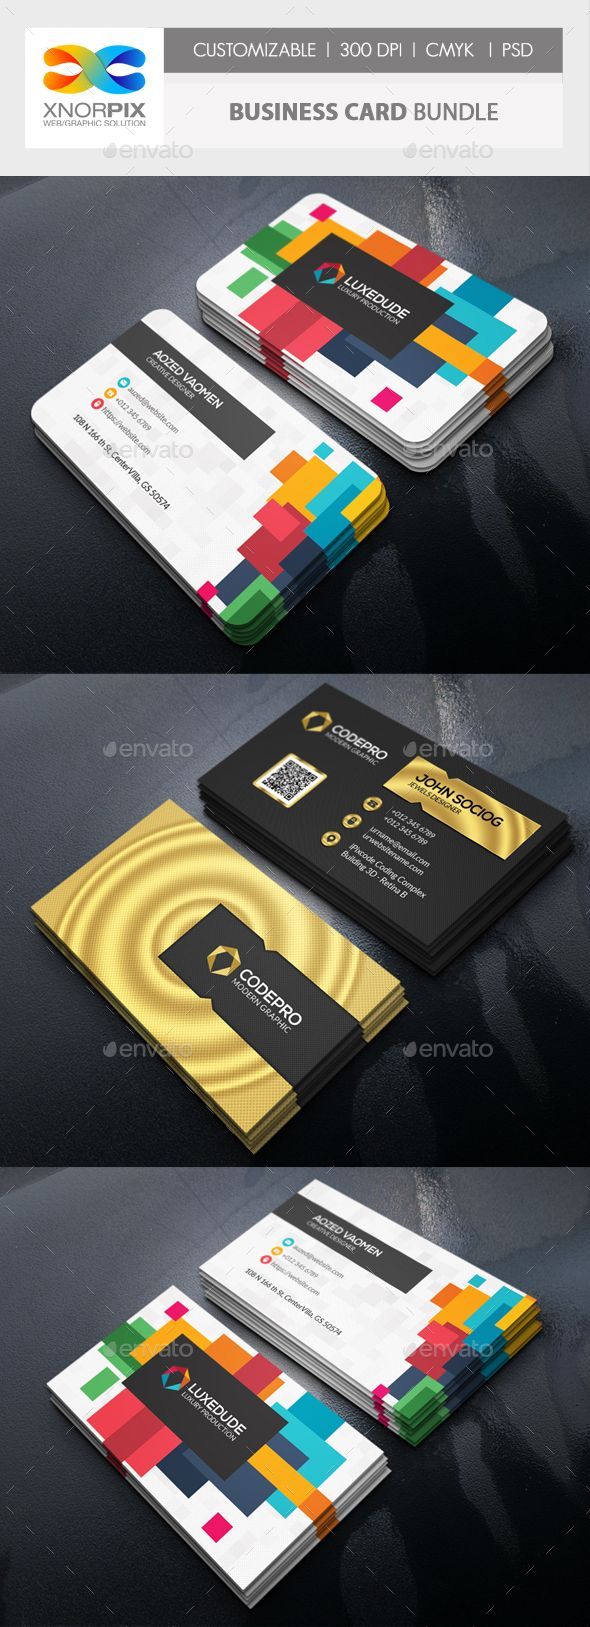 Business Card Bundle Round Business Cards Business Card Design Business Cards Creative